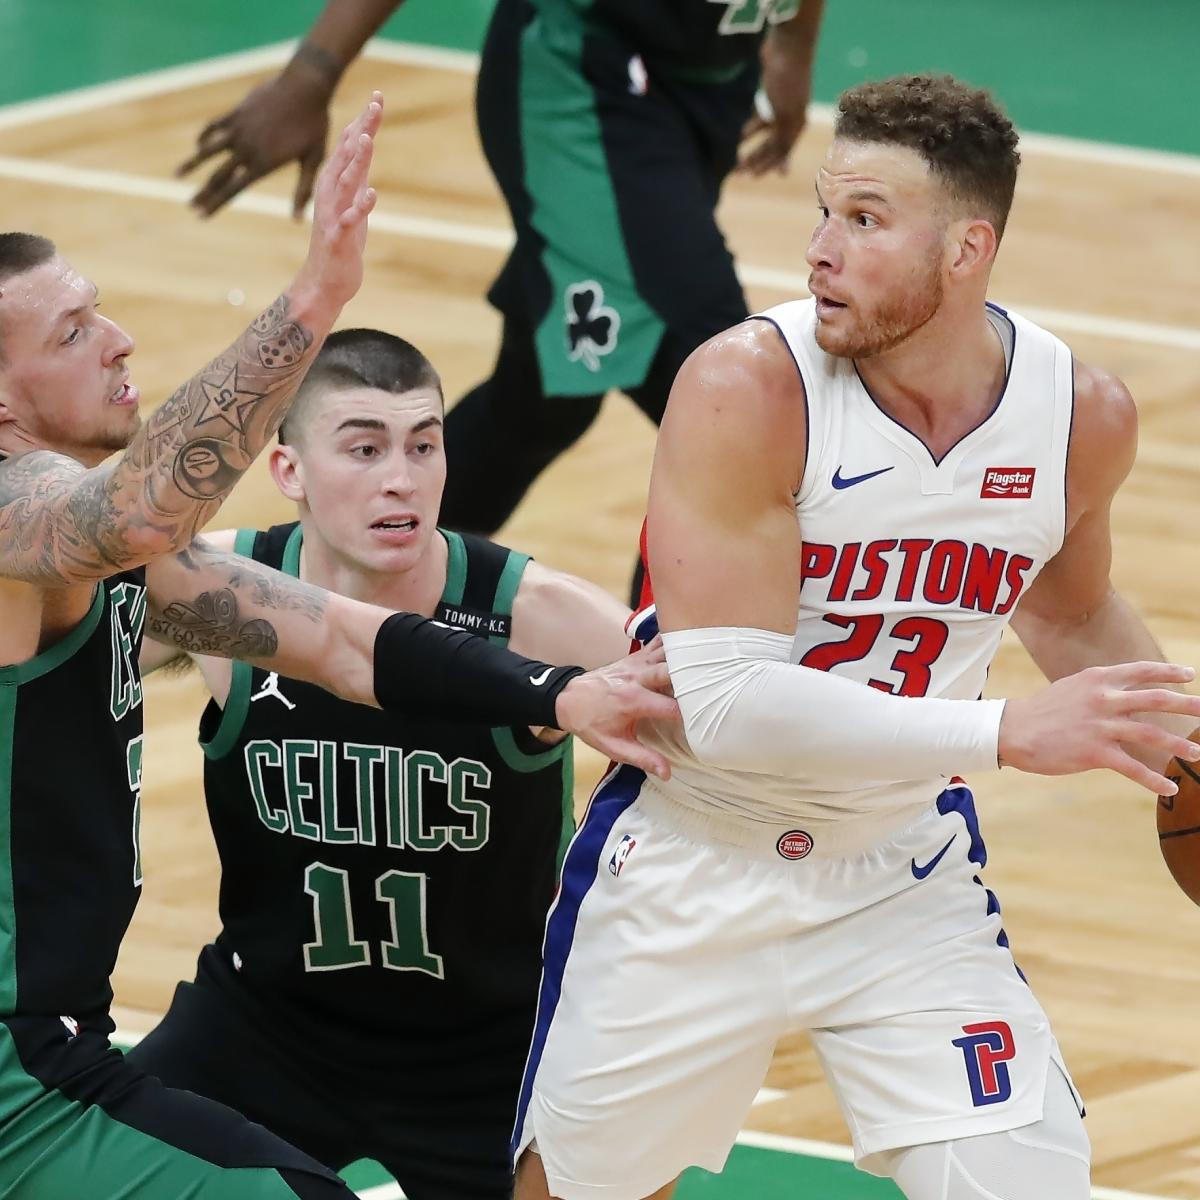 Blake Griffin to Be Held Out by Pistons amid Trade, Contract Buyout Rumors